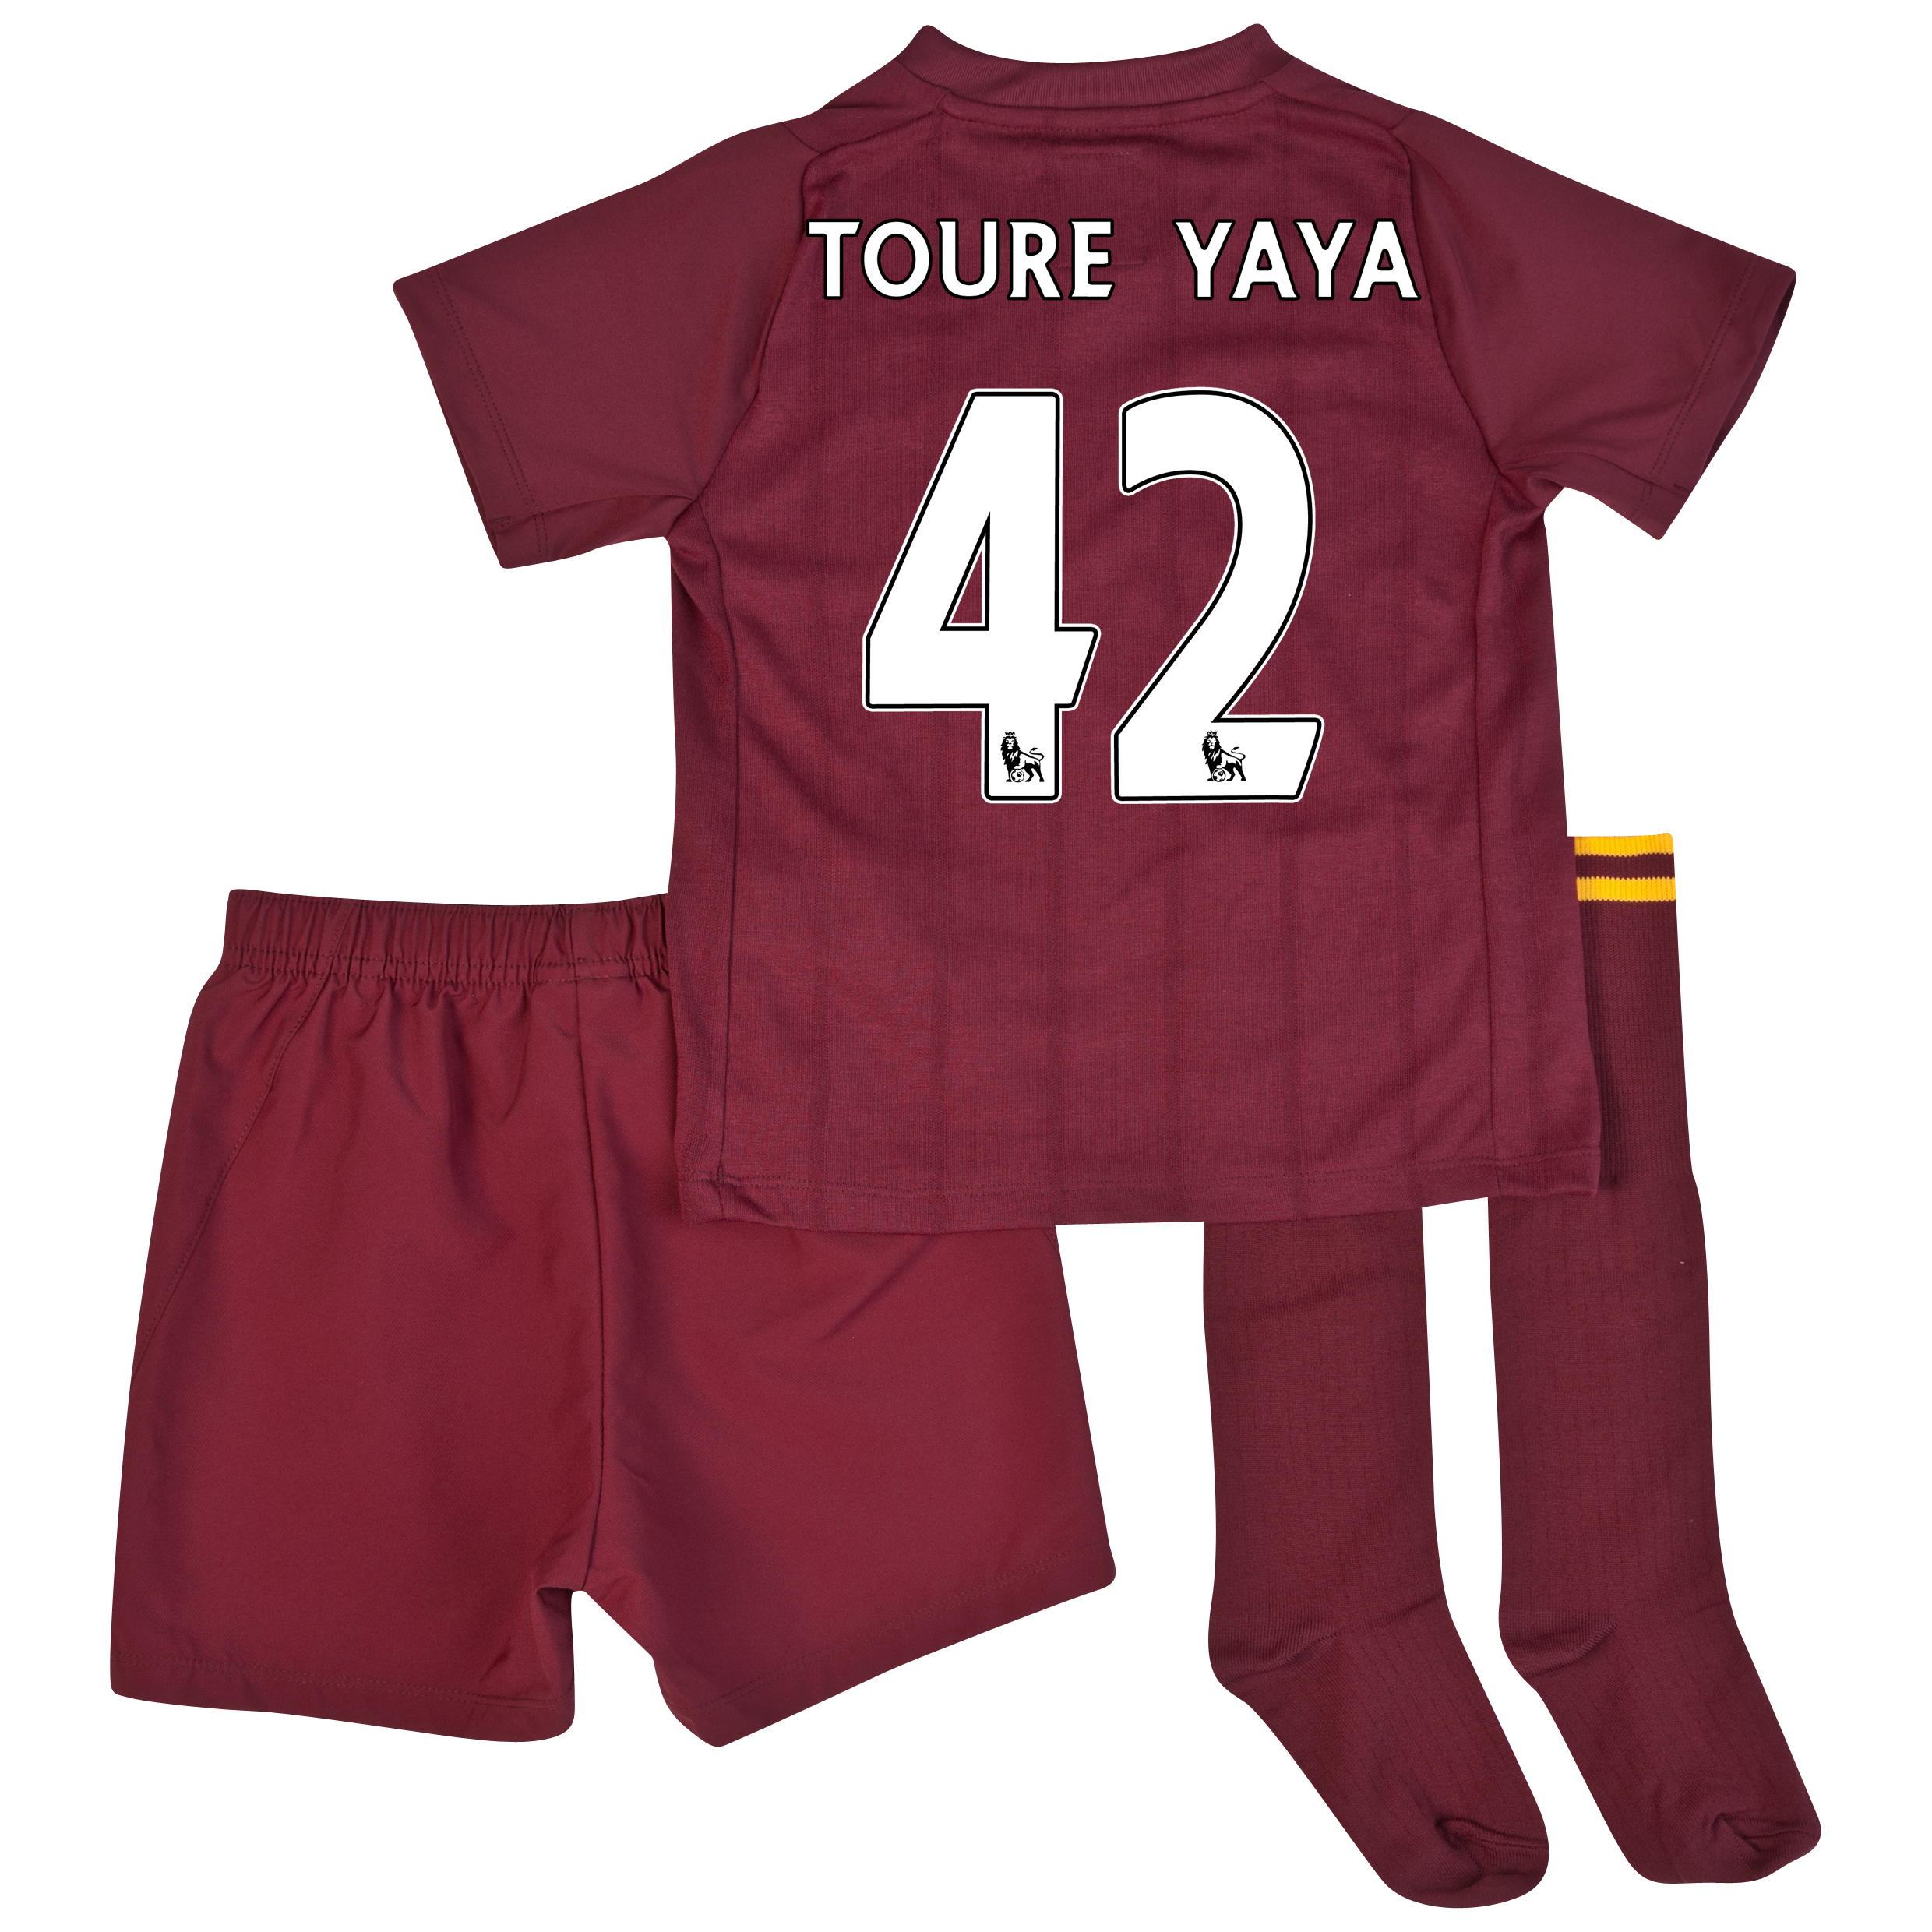 Manchester City Away Infant Kit 2012/13 with Toure Yaya 42 printing